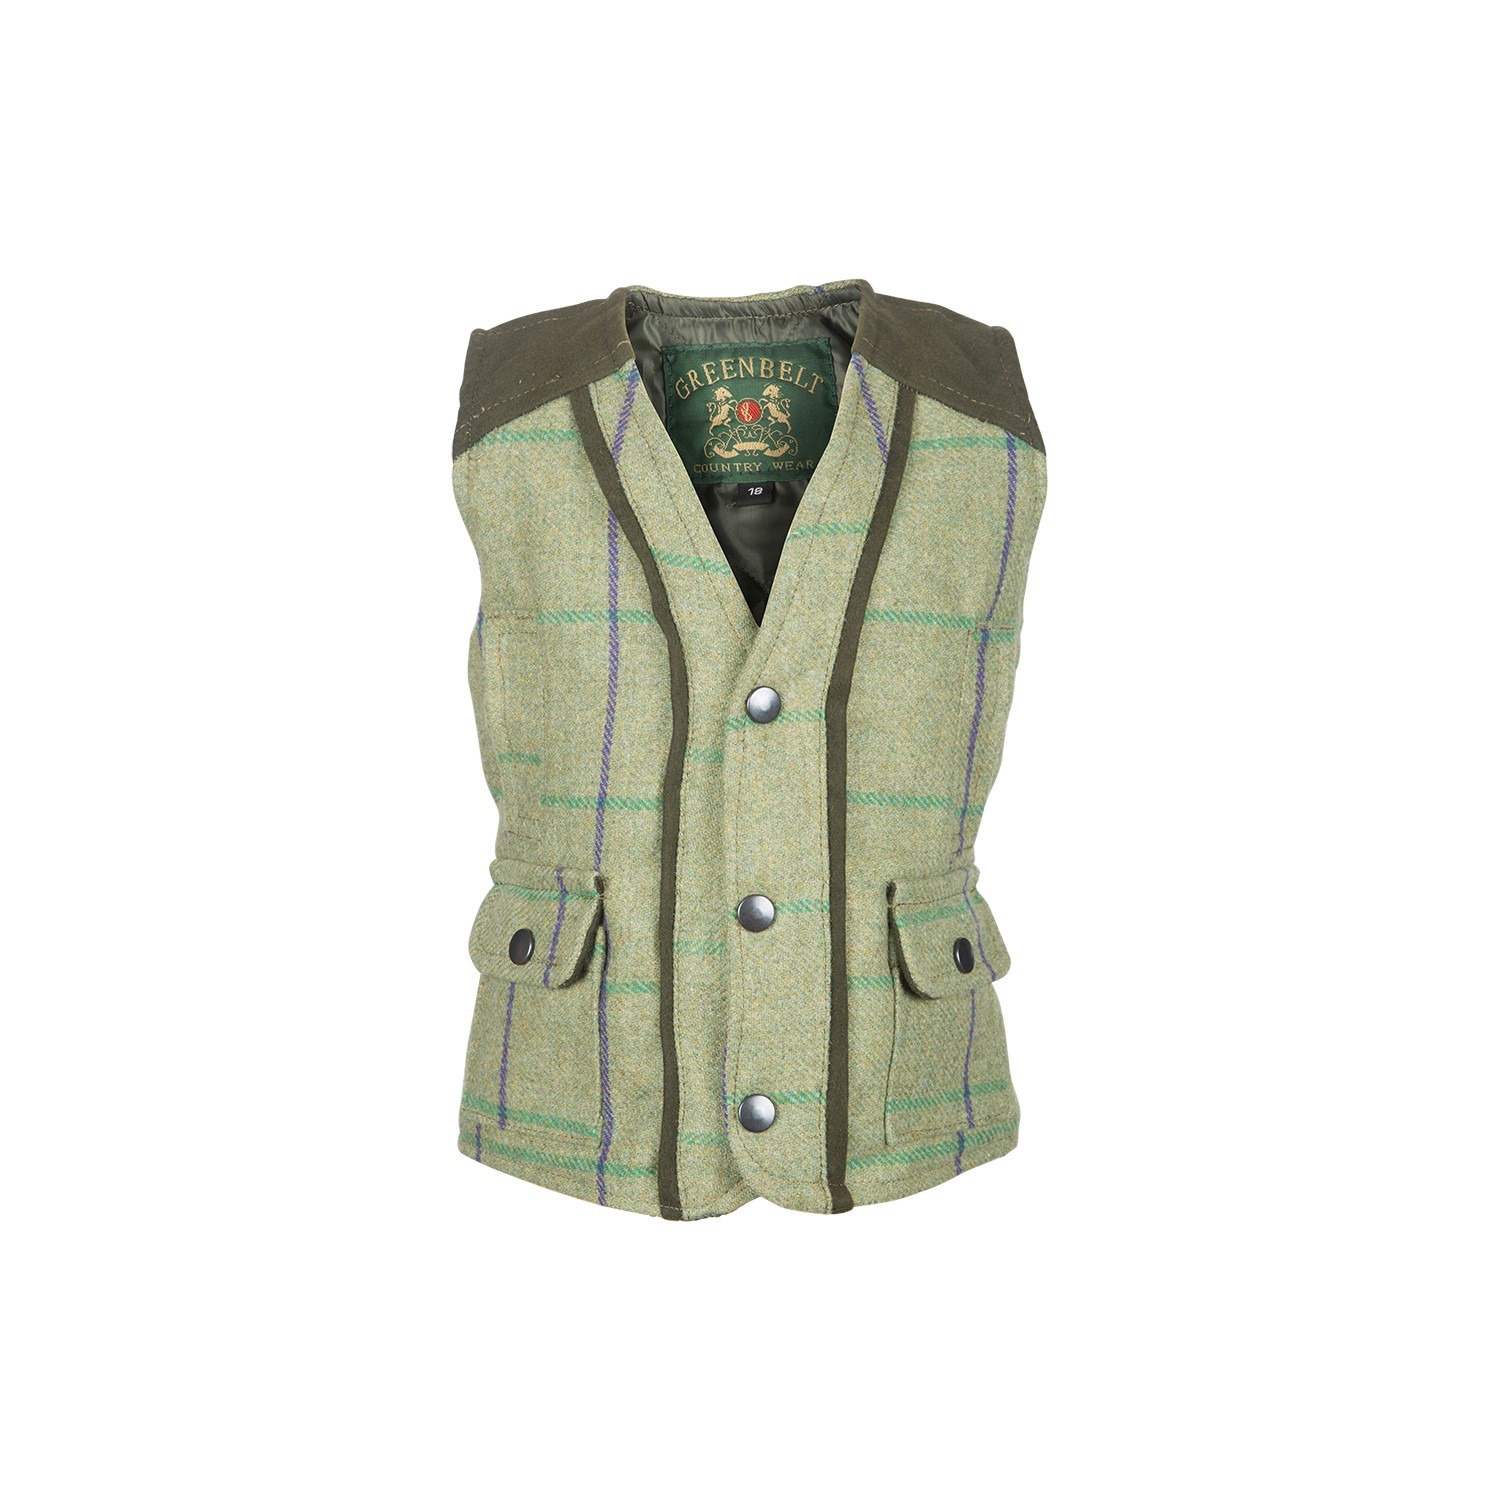 Gilet enfant en tweed vert à carreaux violet ou rose